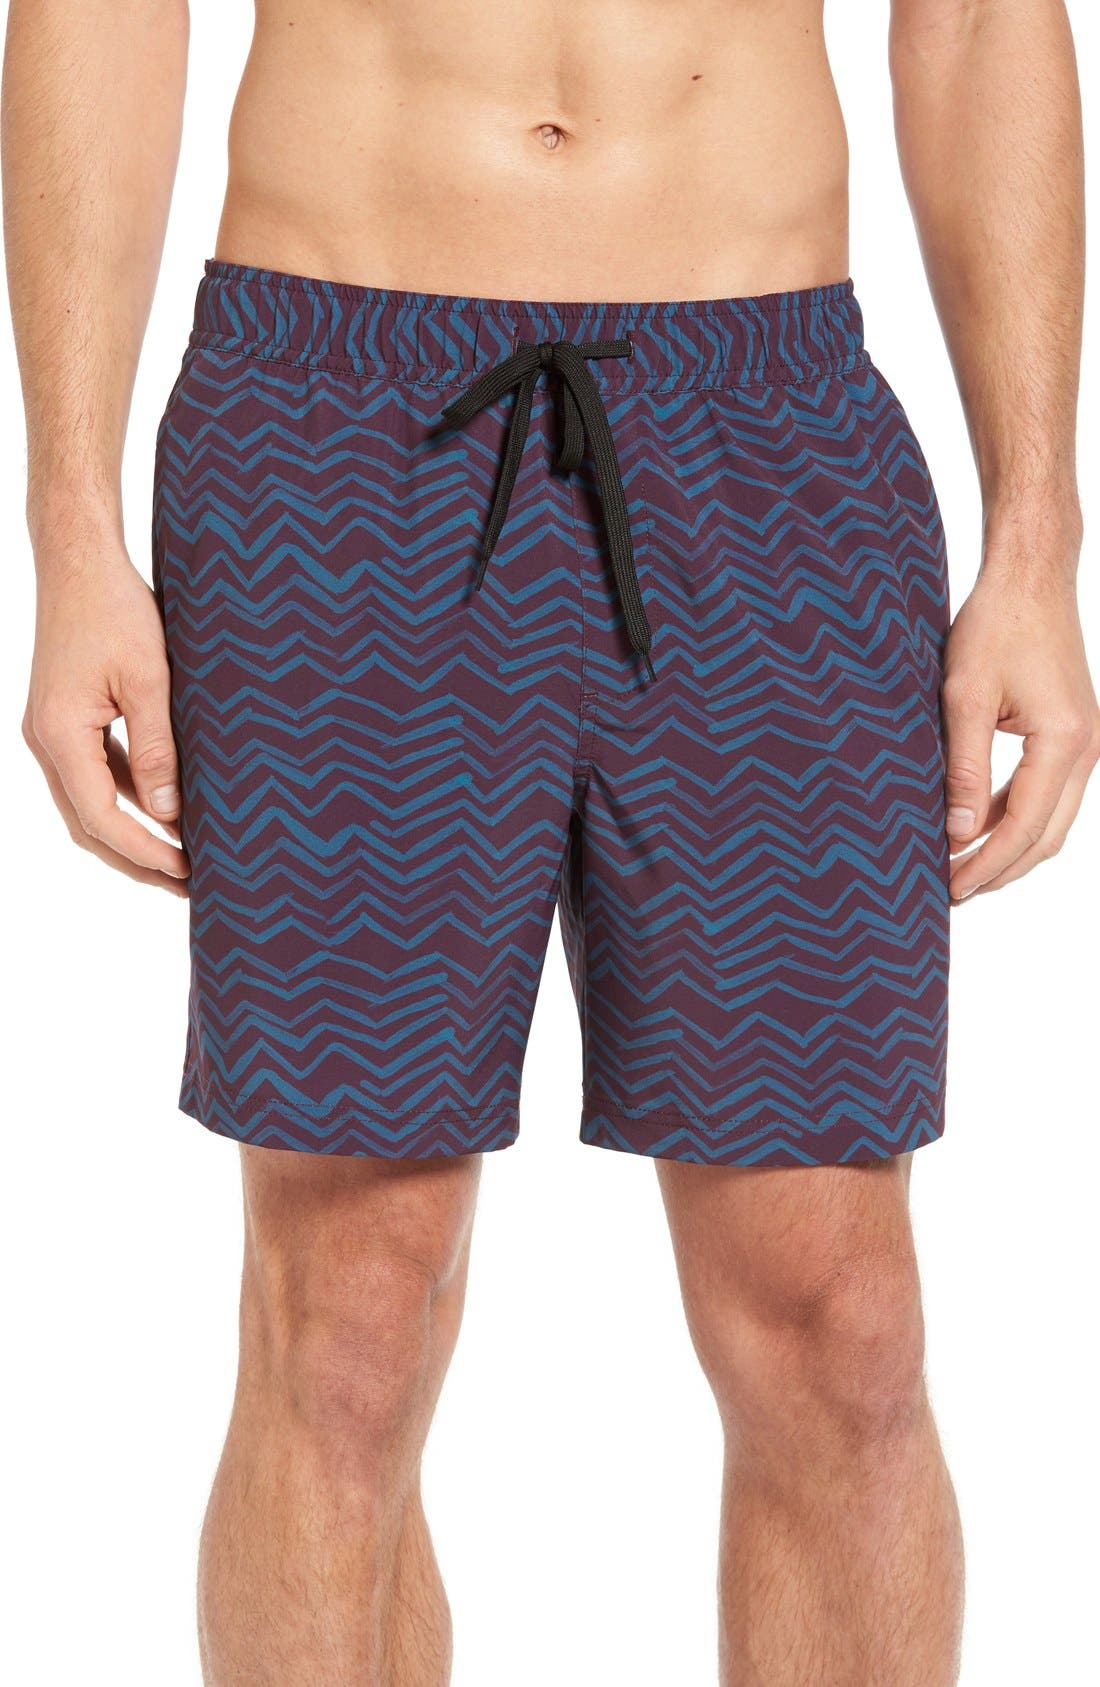 Calibrate Swim Trunks